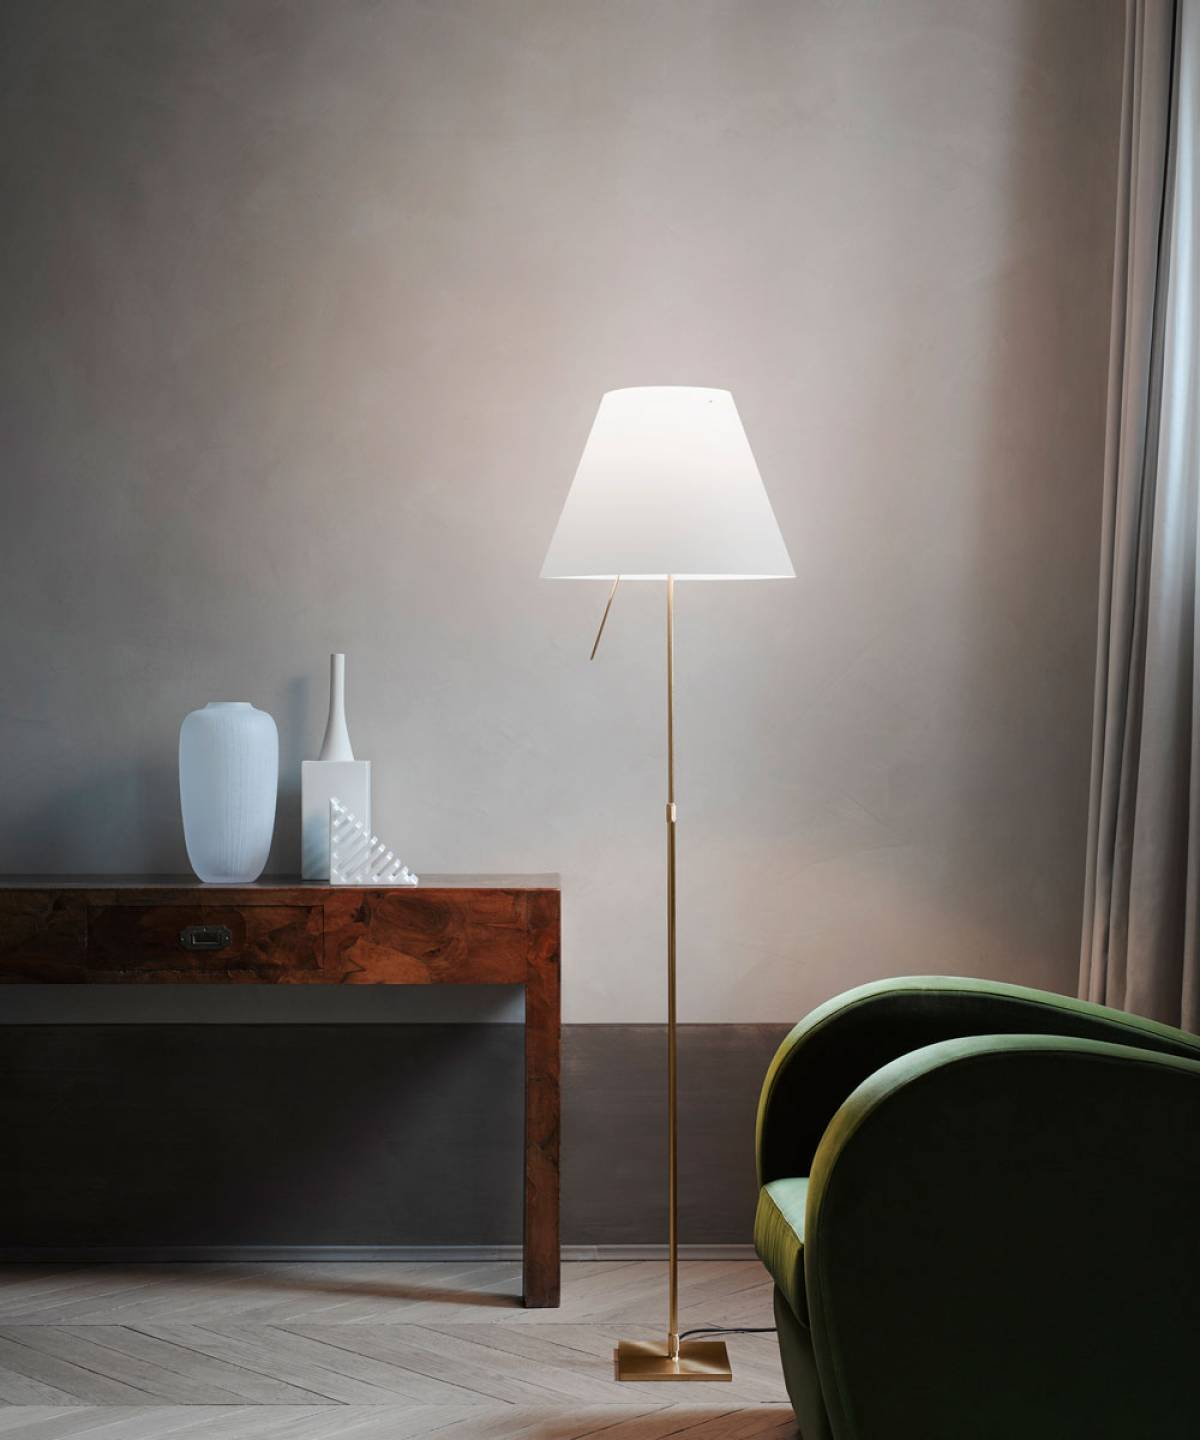 4 Costanza floor lamp Luceplan